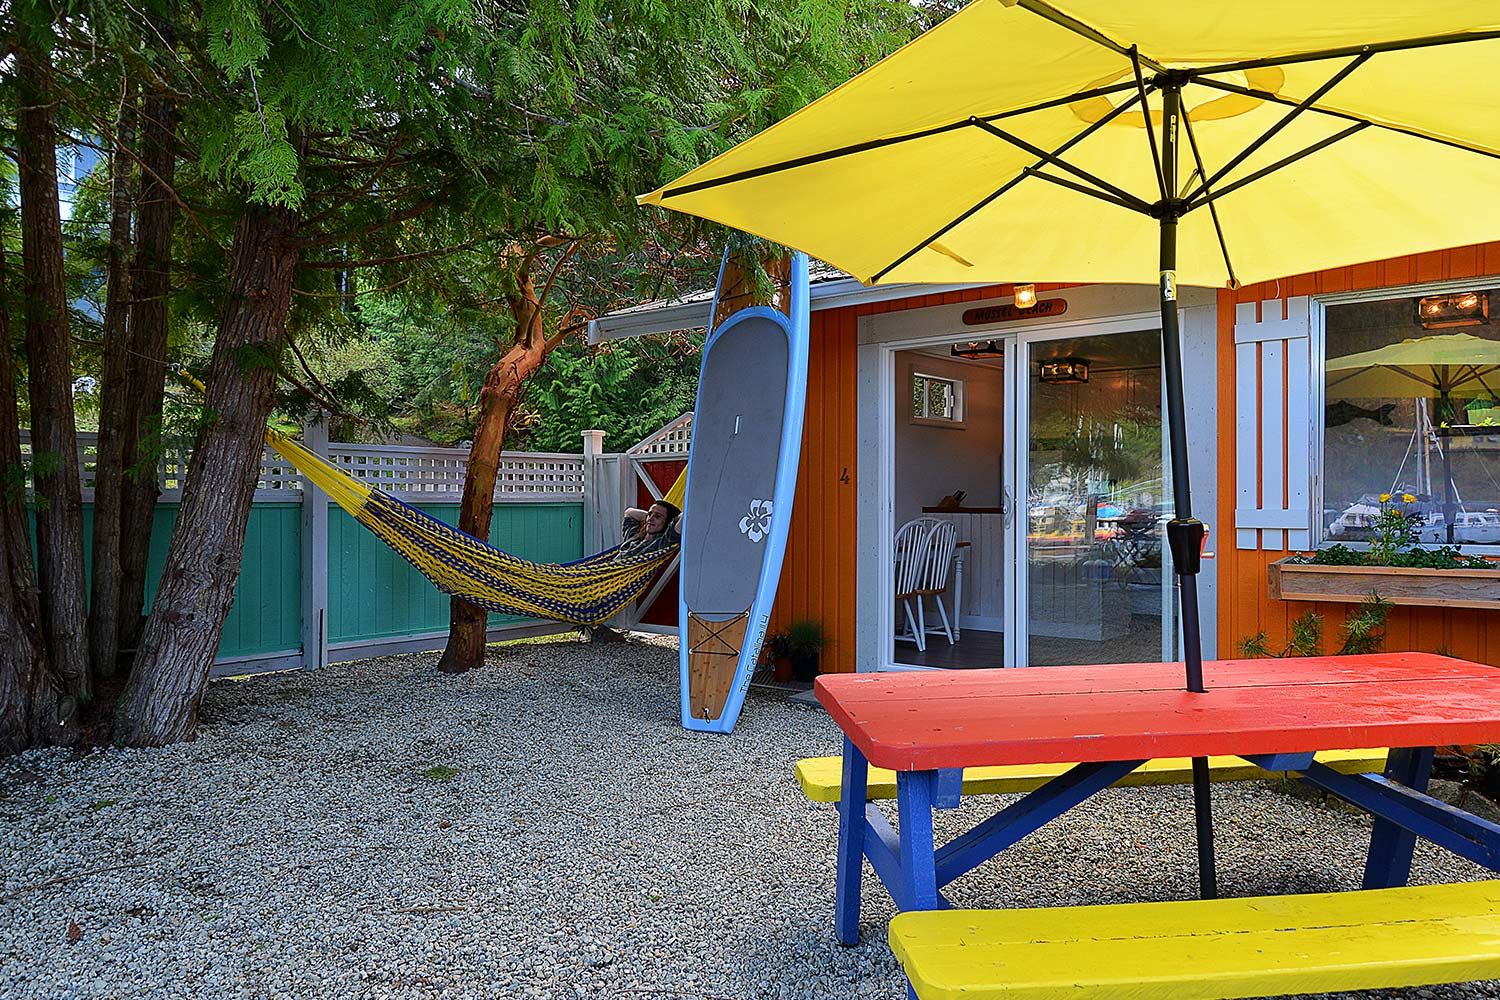 A person relaxes in the hammock next to the orange-coloured Mussel Beach Sunshine Coast cottage rental at John Henry's Resort.